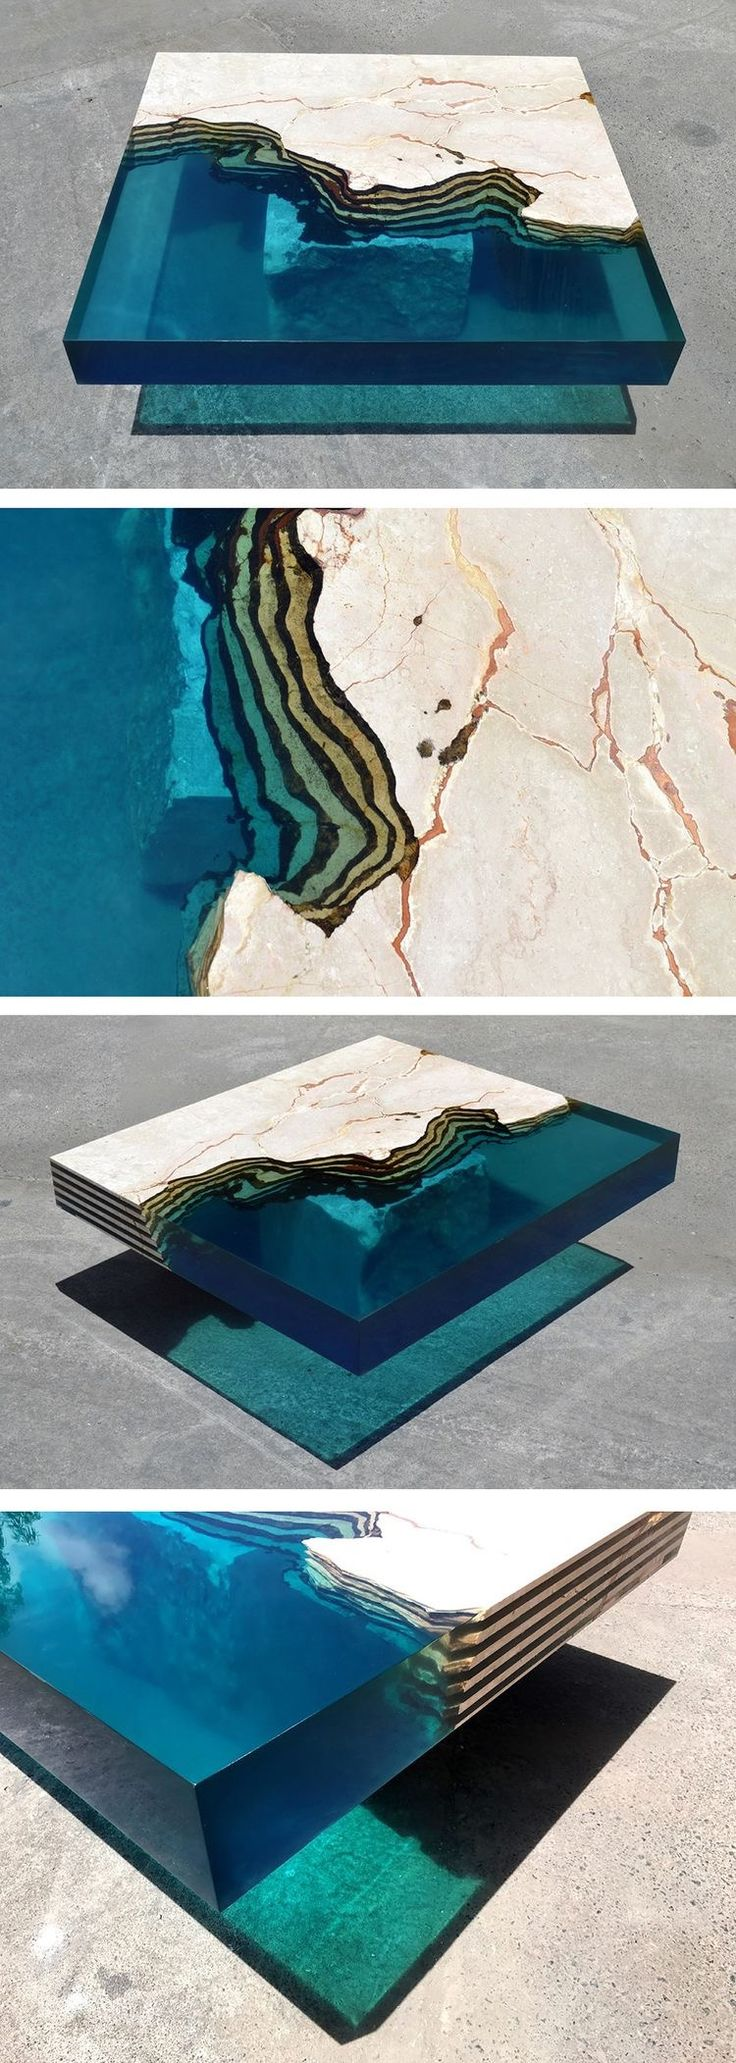 24 best epoxy images on Pinterest | Coffee tables, Resin table and ...